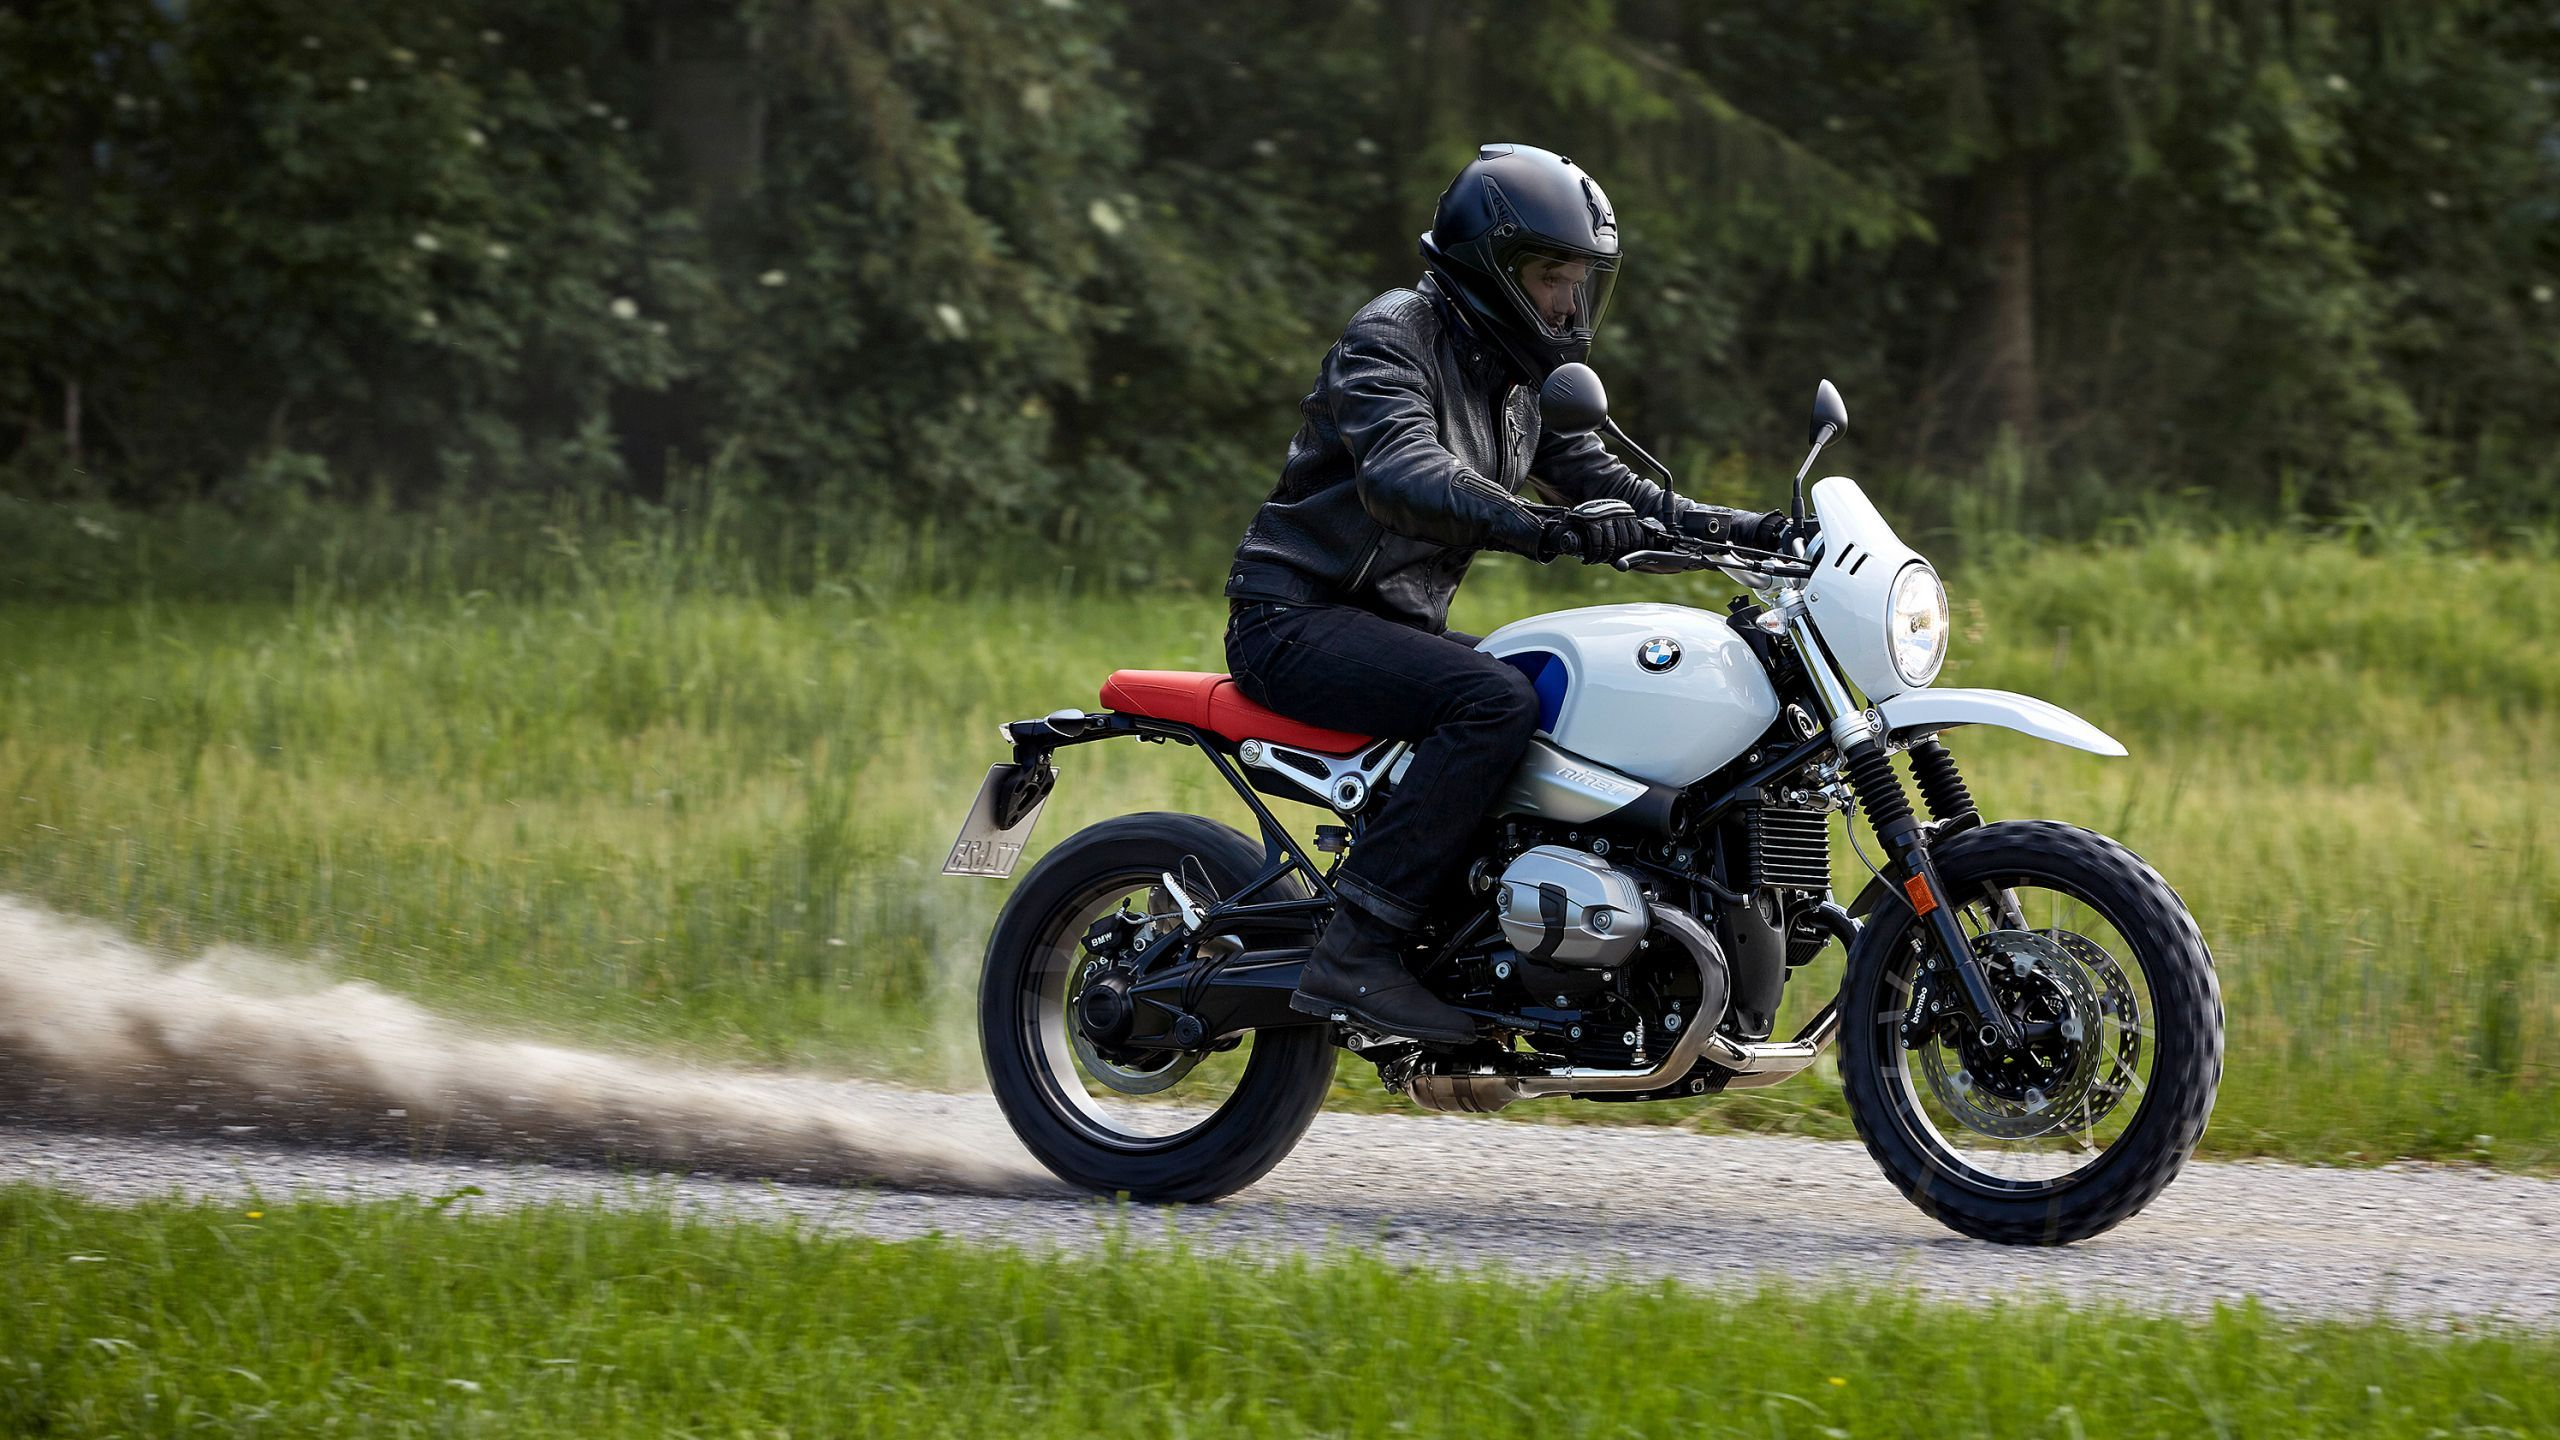 Bmw R Nine T 2020 Price And Release Date Di 2020